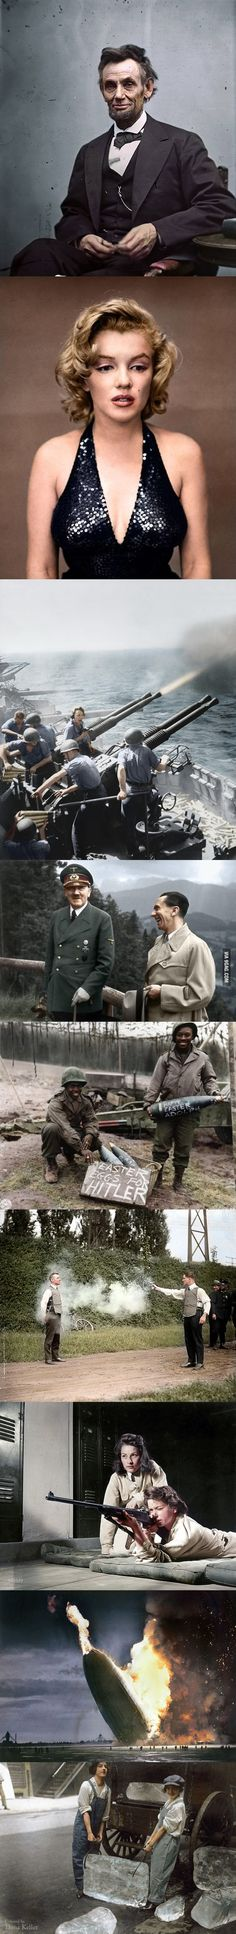 History in Color. Some repeats but I still love the concept. Makes it so much closer to living memory